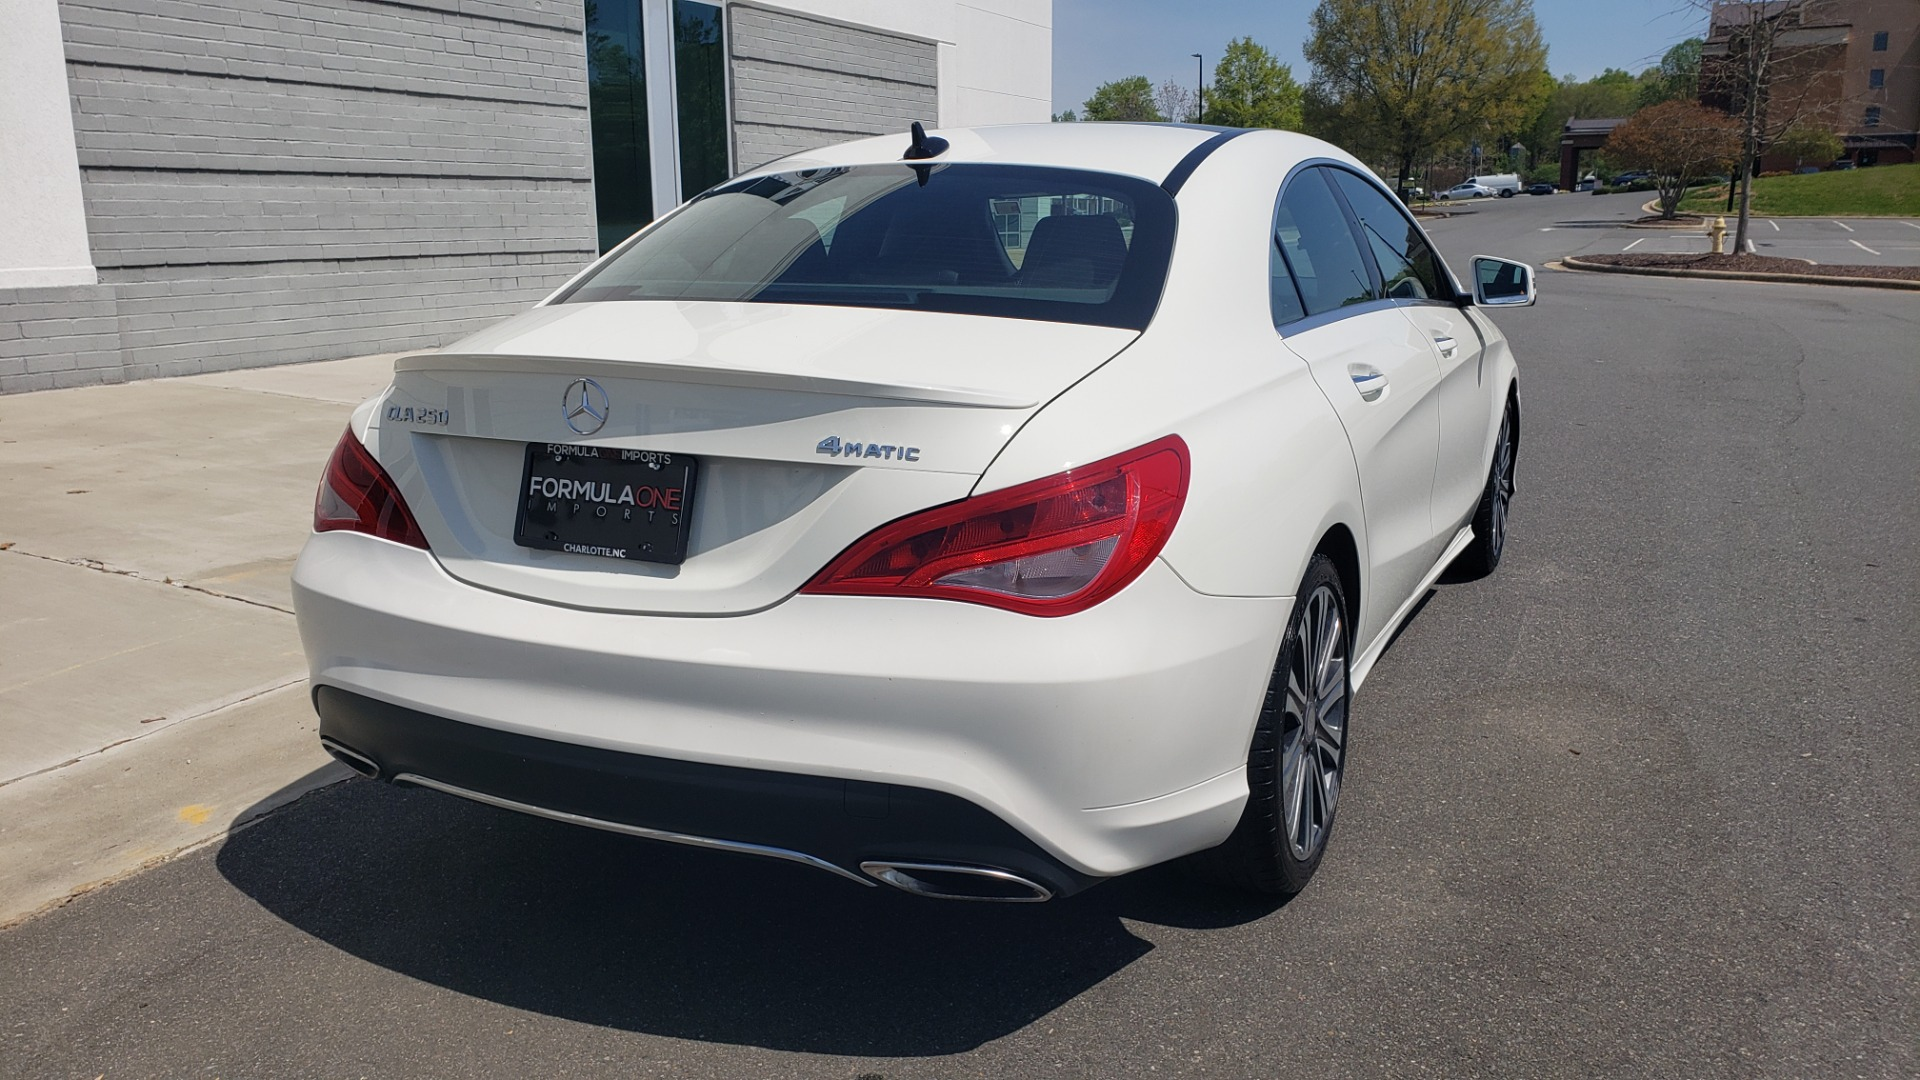 Used 2018 Mercedes-Benz CLA 250 4MATIC PREMIUM / PANO-ROOF / CONV PKG / APPLE / REARVIEW for sale $25,395 at Formula Imports in Charlotte NC 28227 8